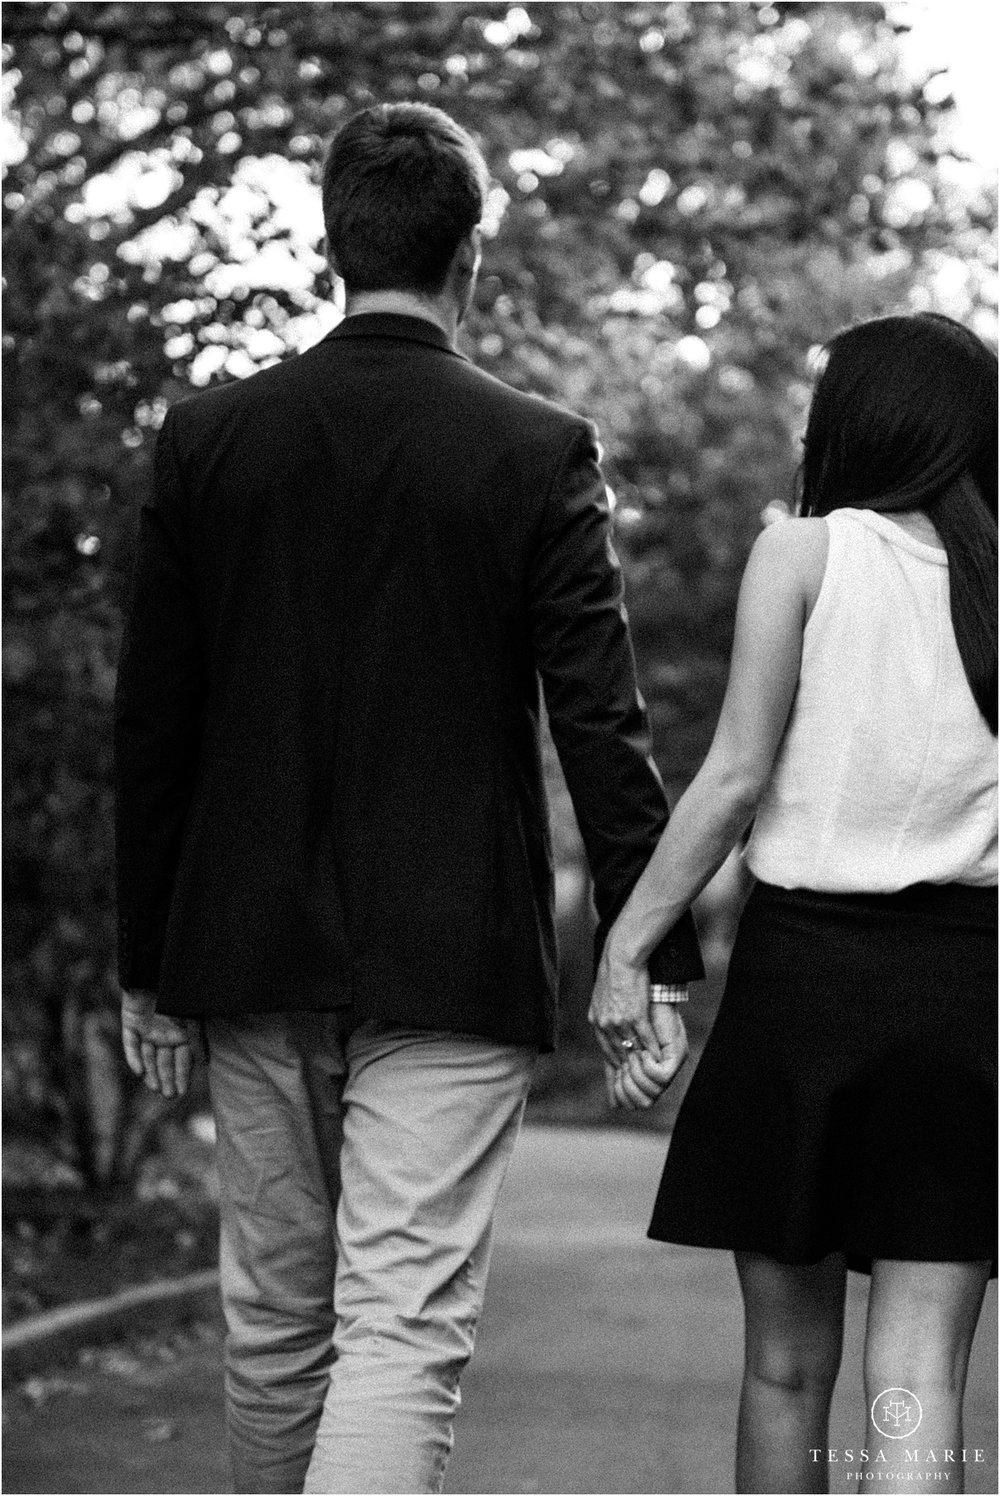 Tessa_marie_photography_wedding_photographer_engagement_pictures_piedmont_park_0073.jpg